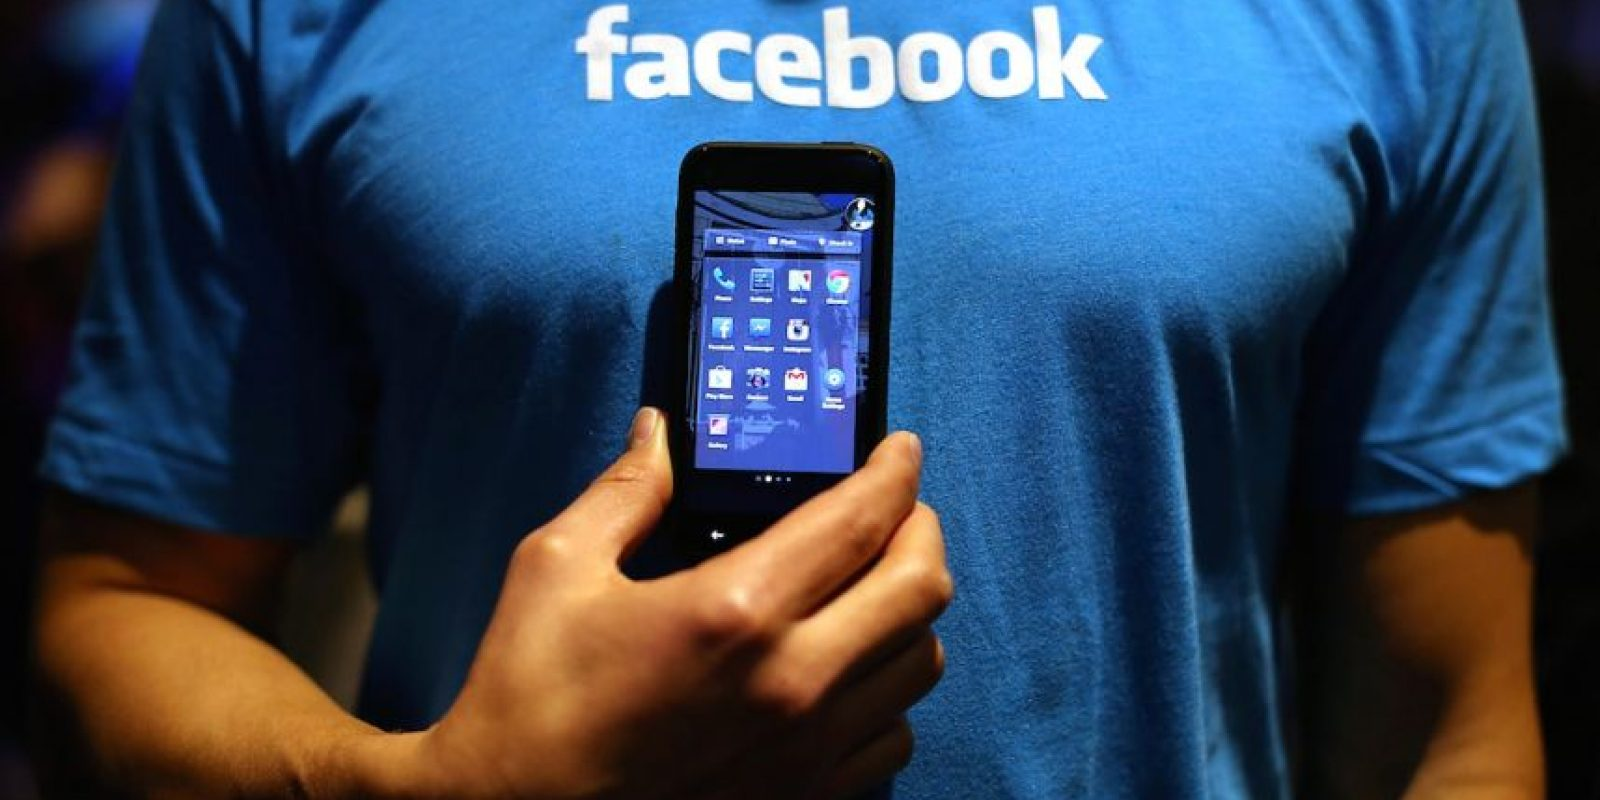 El Internet gratis de Facebook causa polémica. Foto: Getty Images